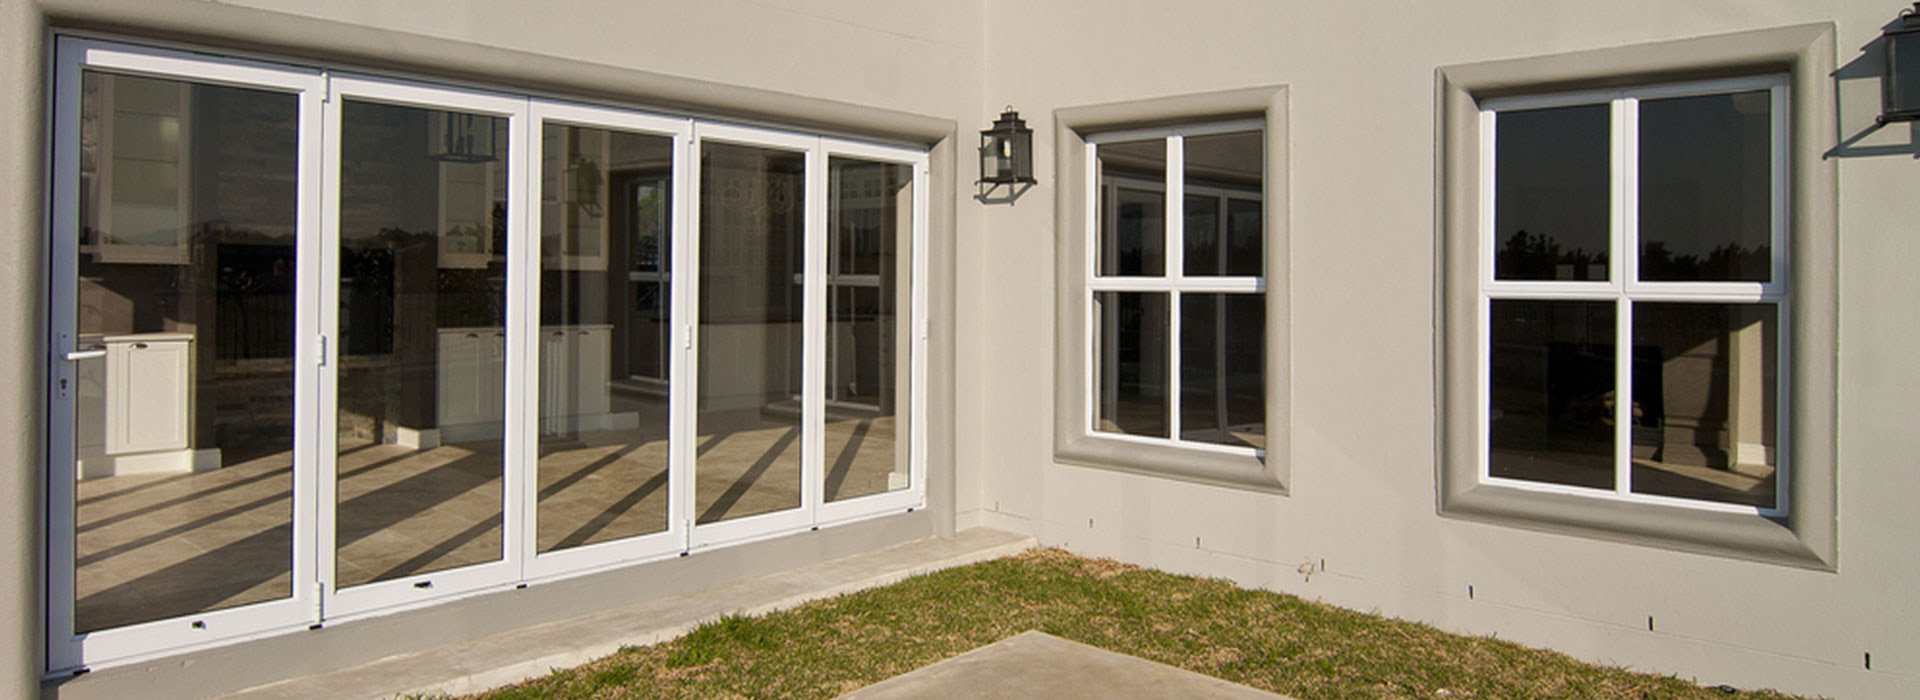 Upvc bi fold doors dartford bi folding door prices for Upvc folding doors